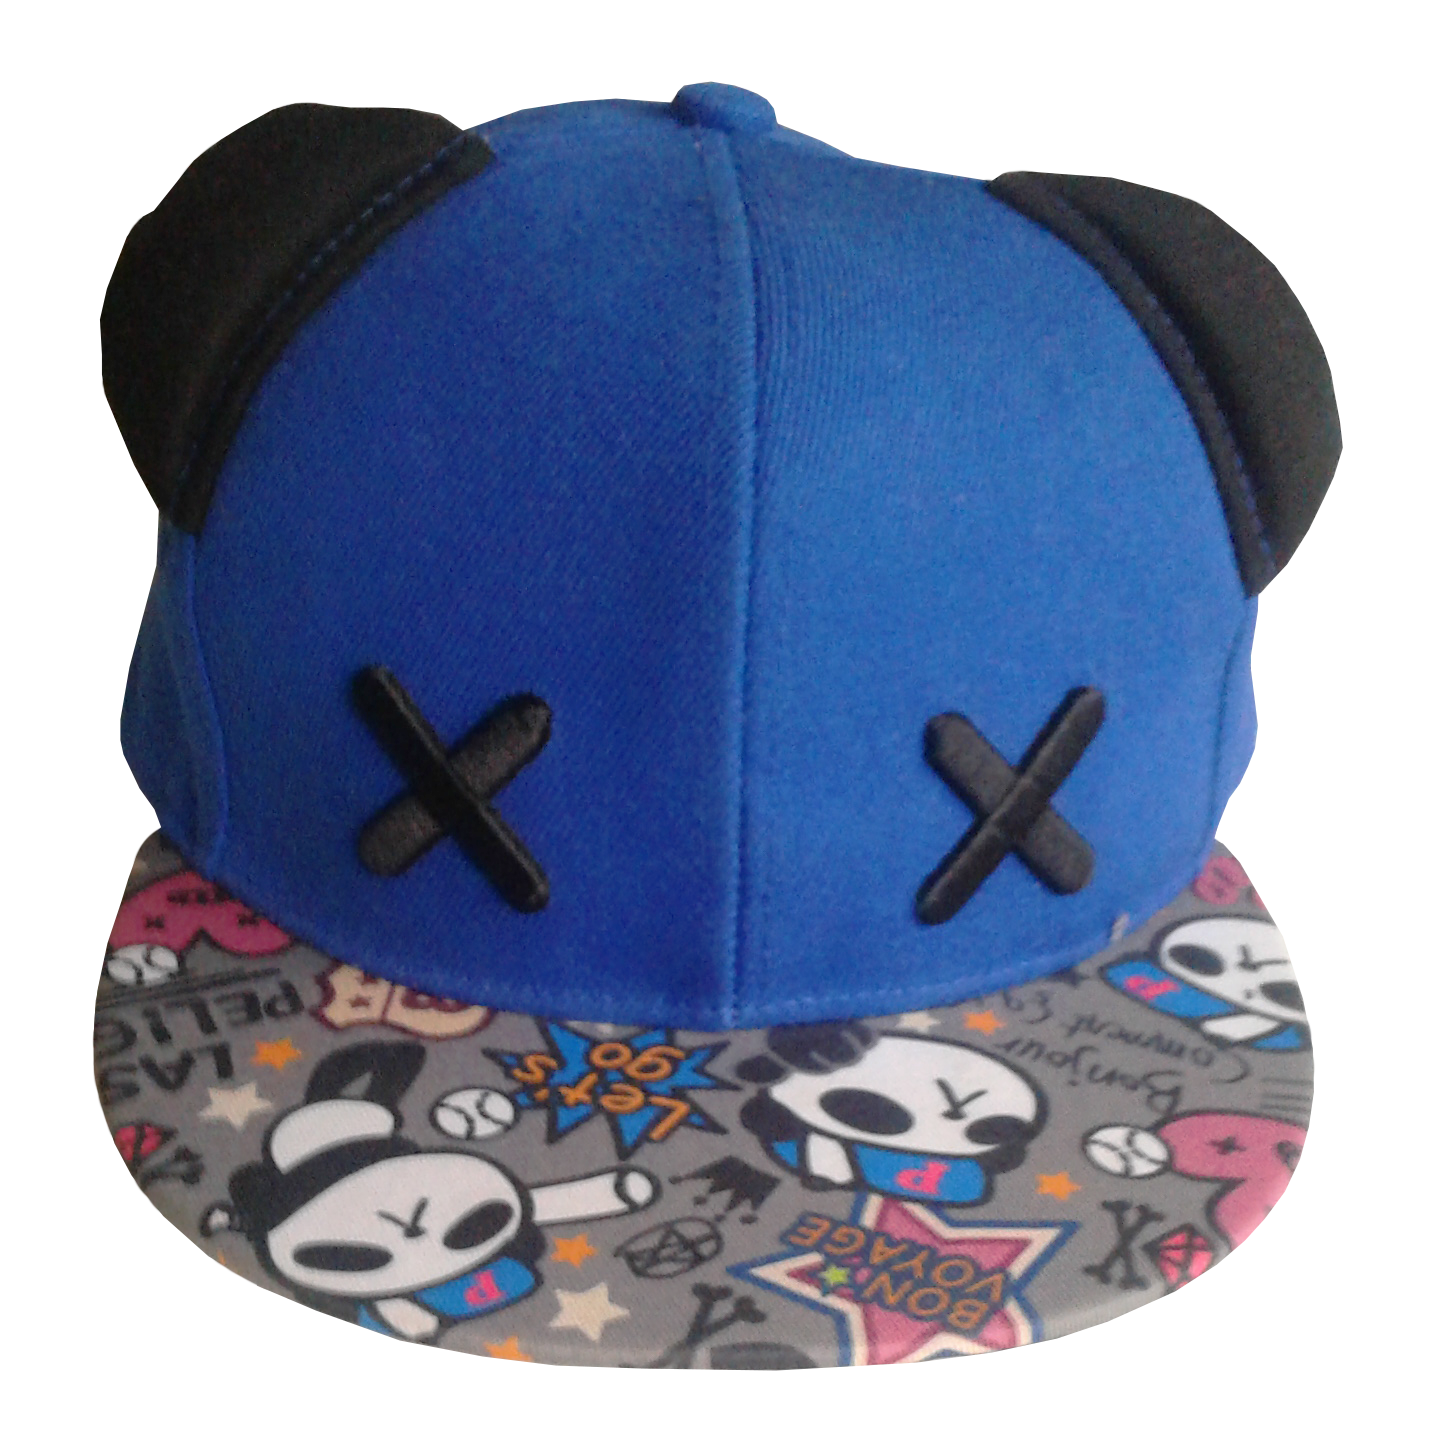 objets insolites coree shopping casquette